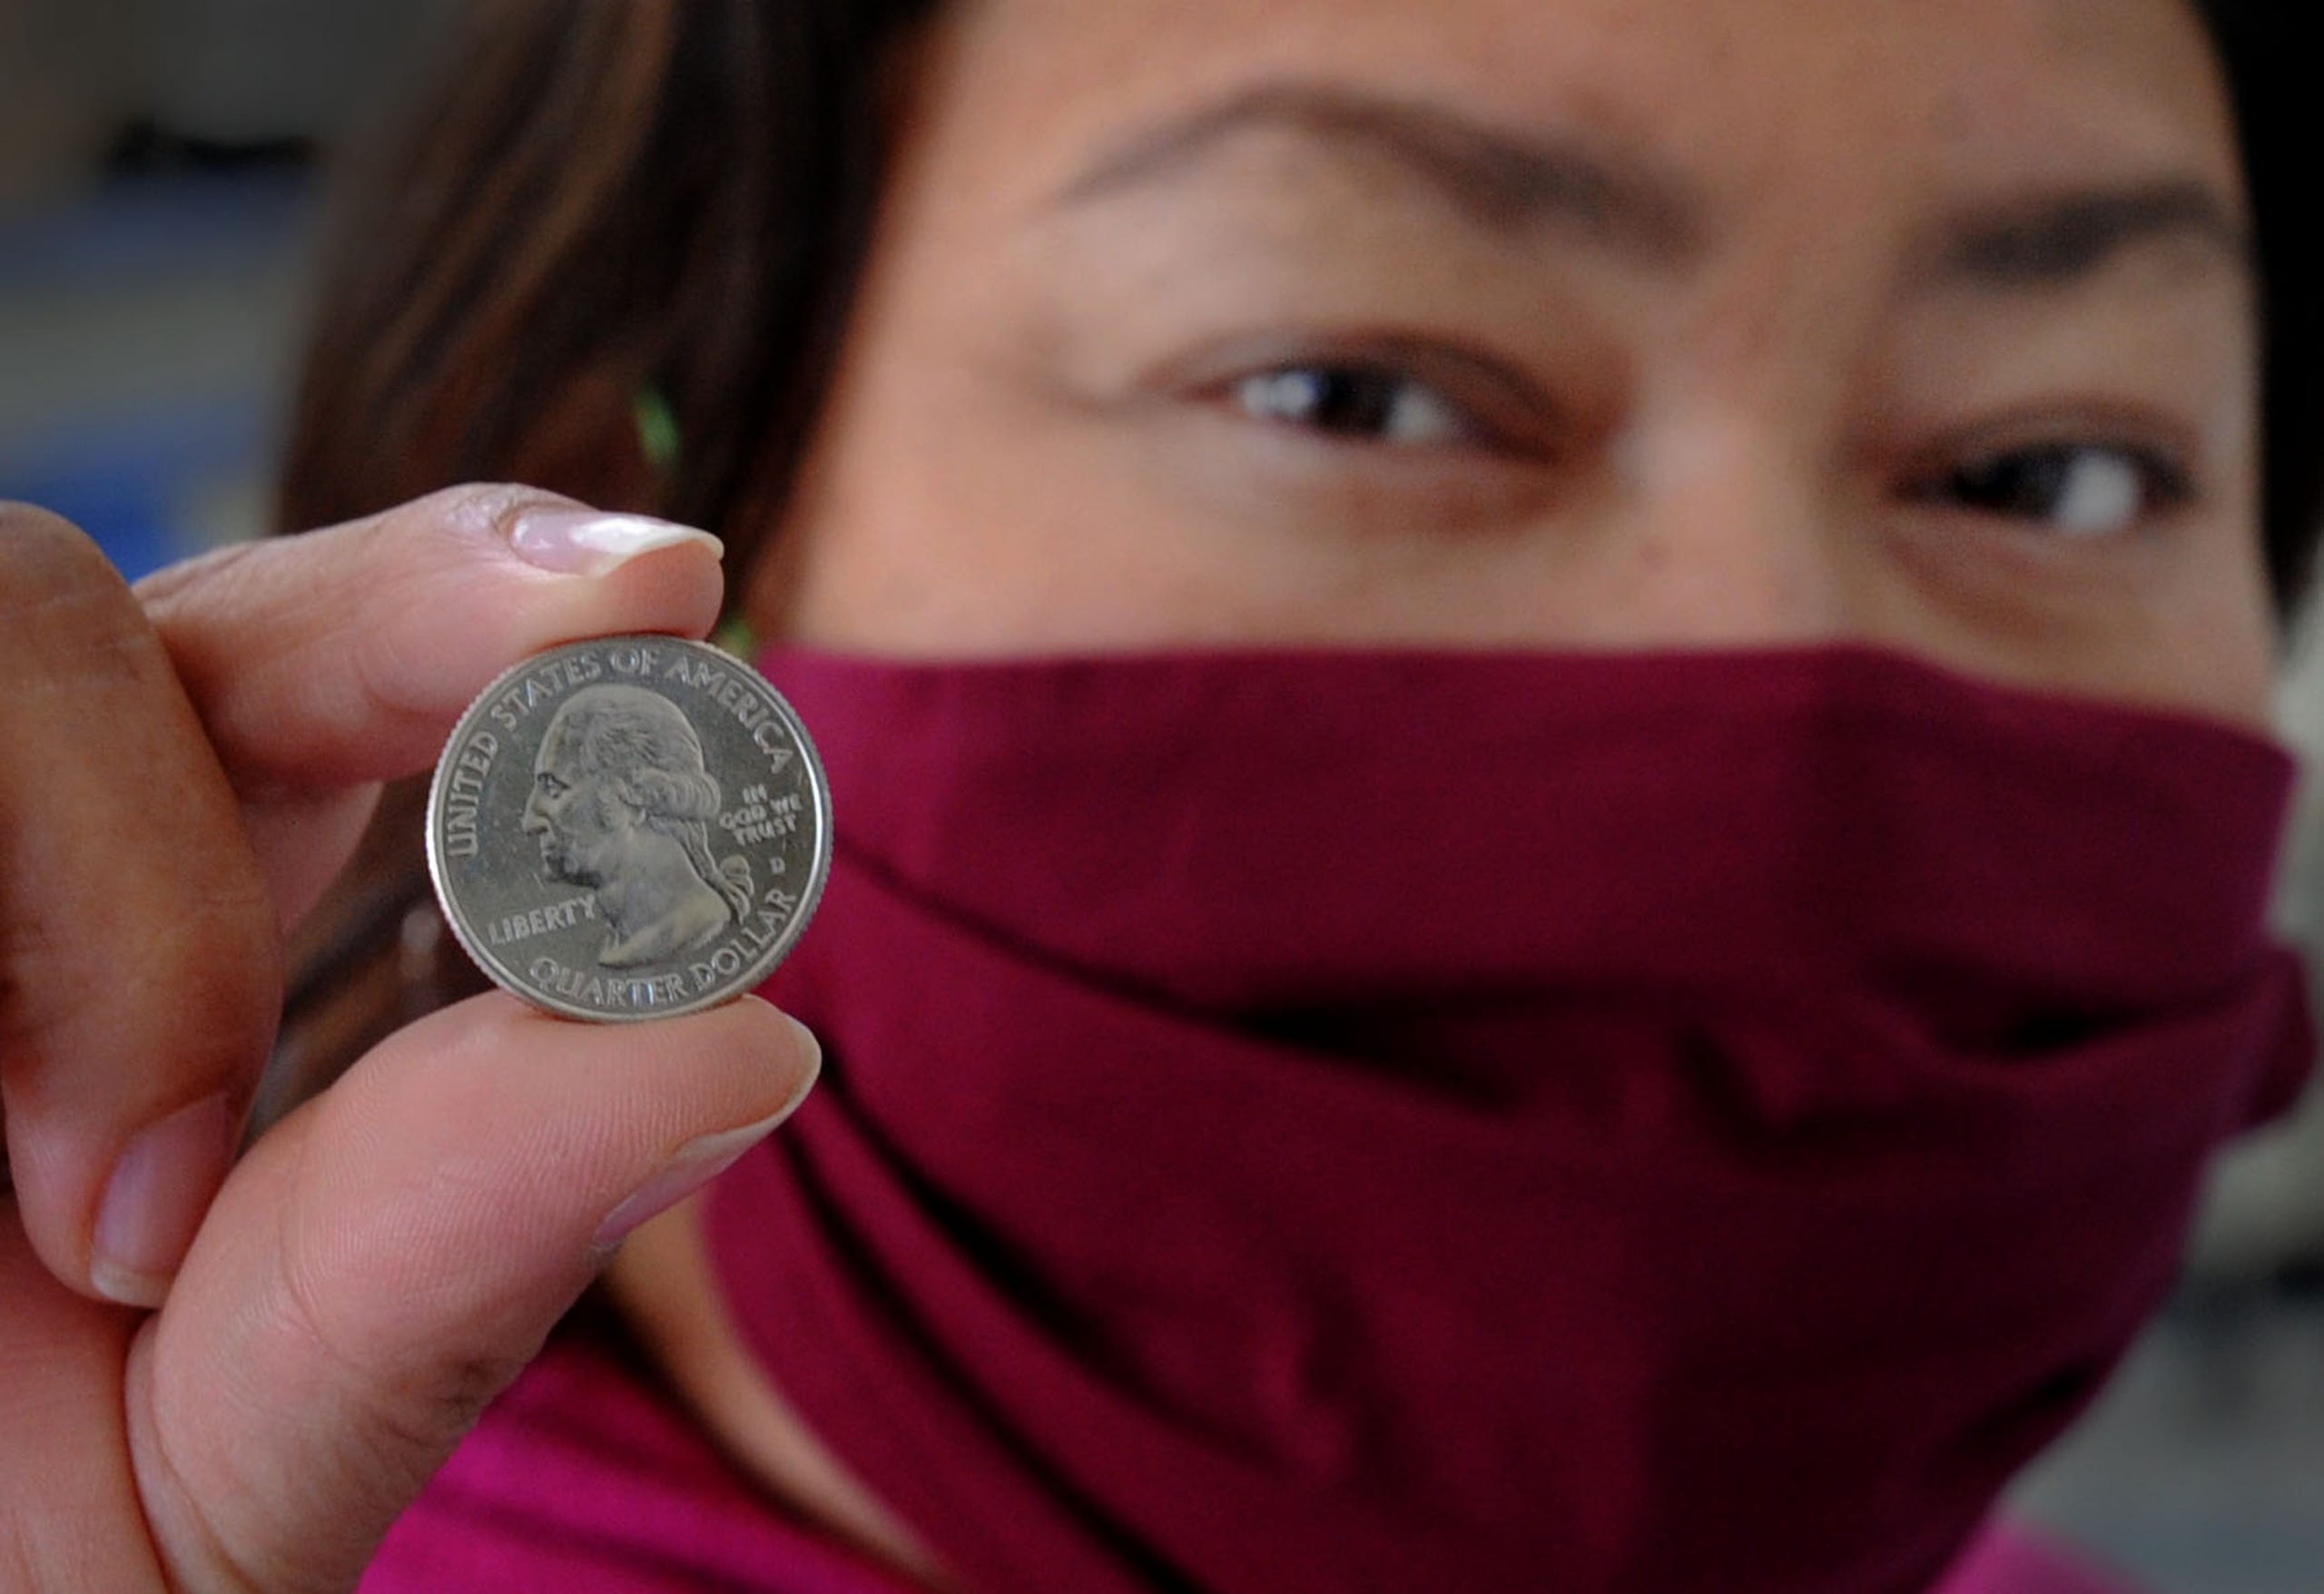 Some Businesses Like Laundromats Are Falling Short On Coins